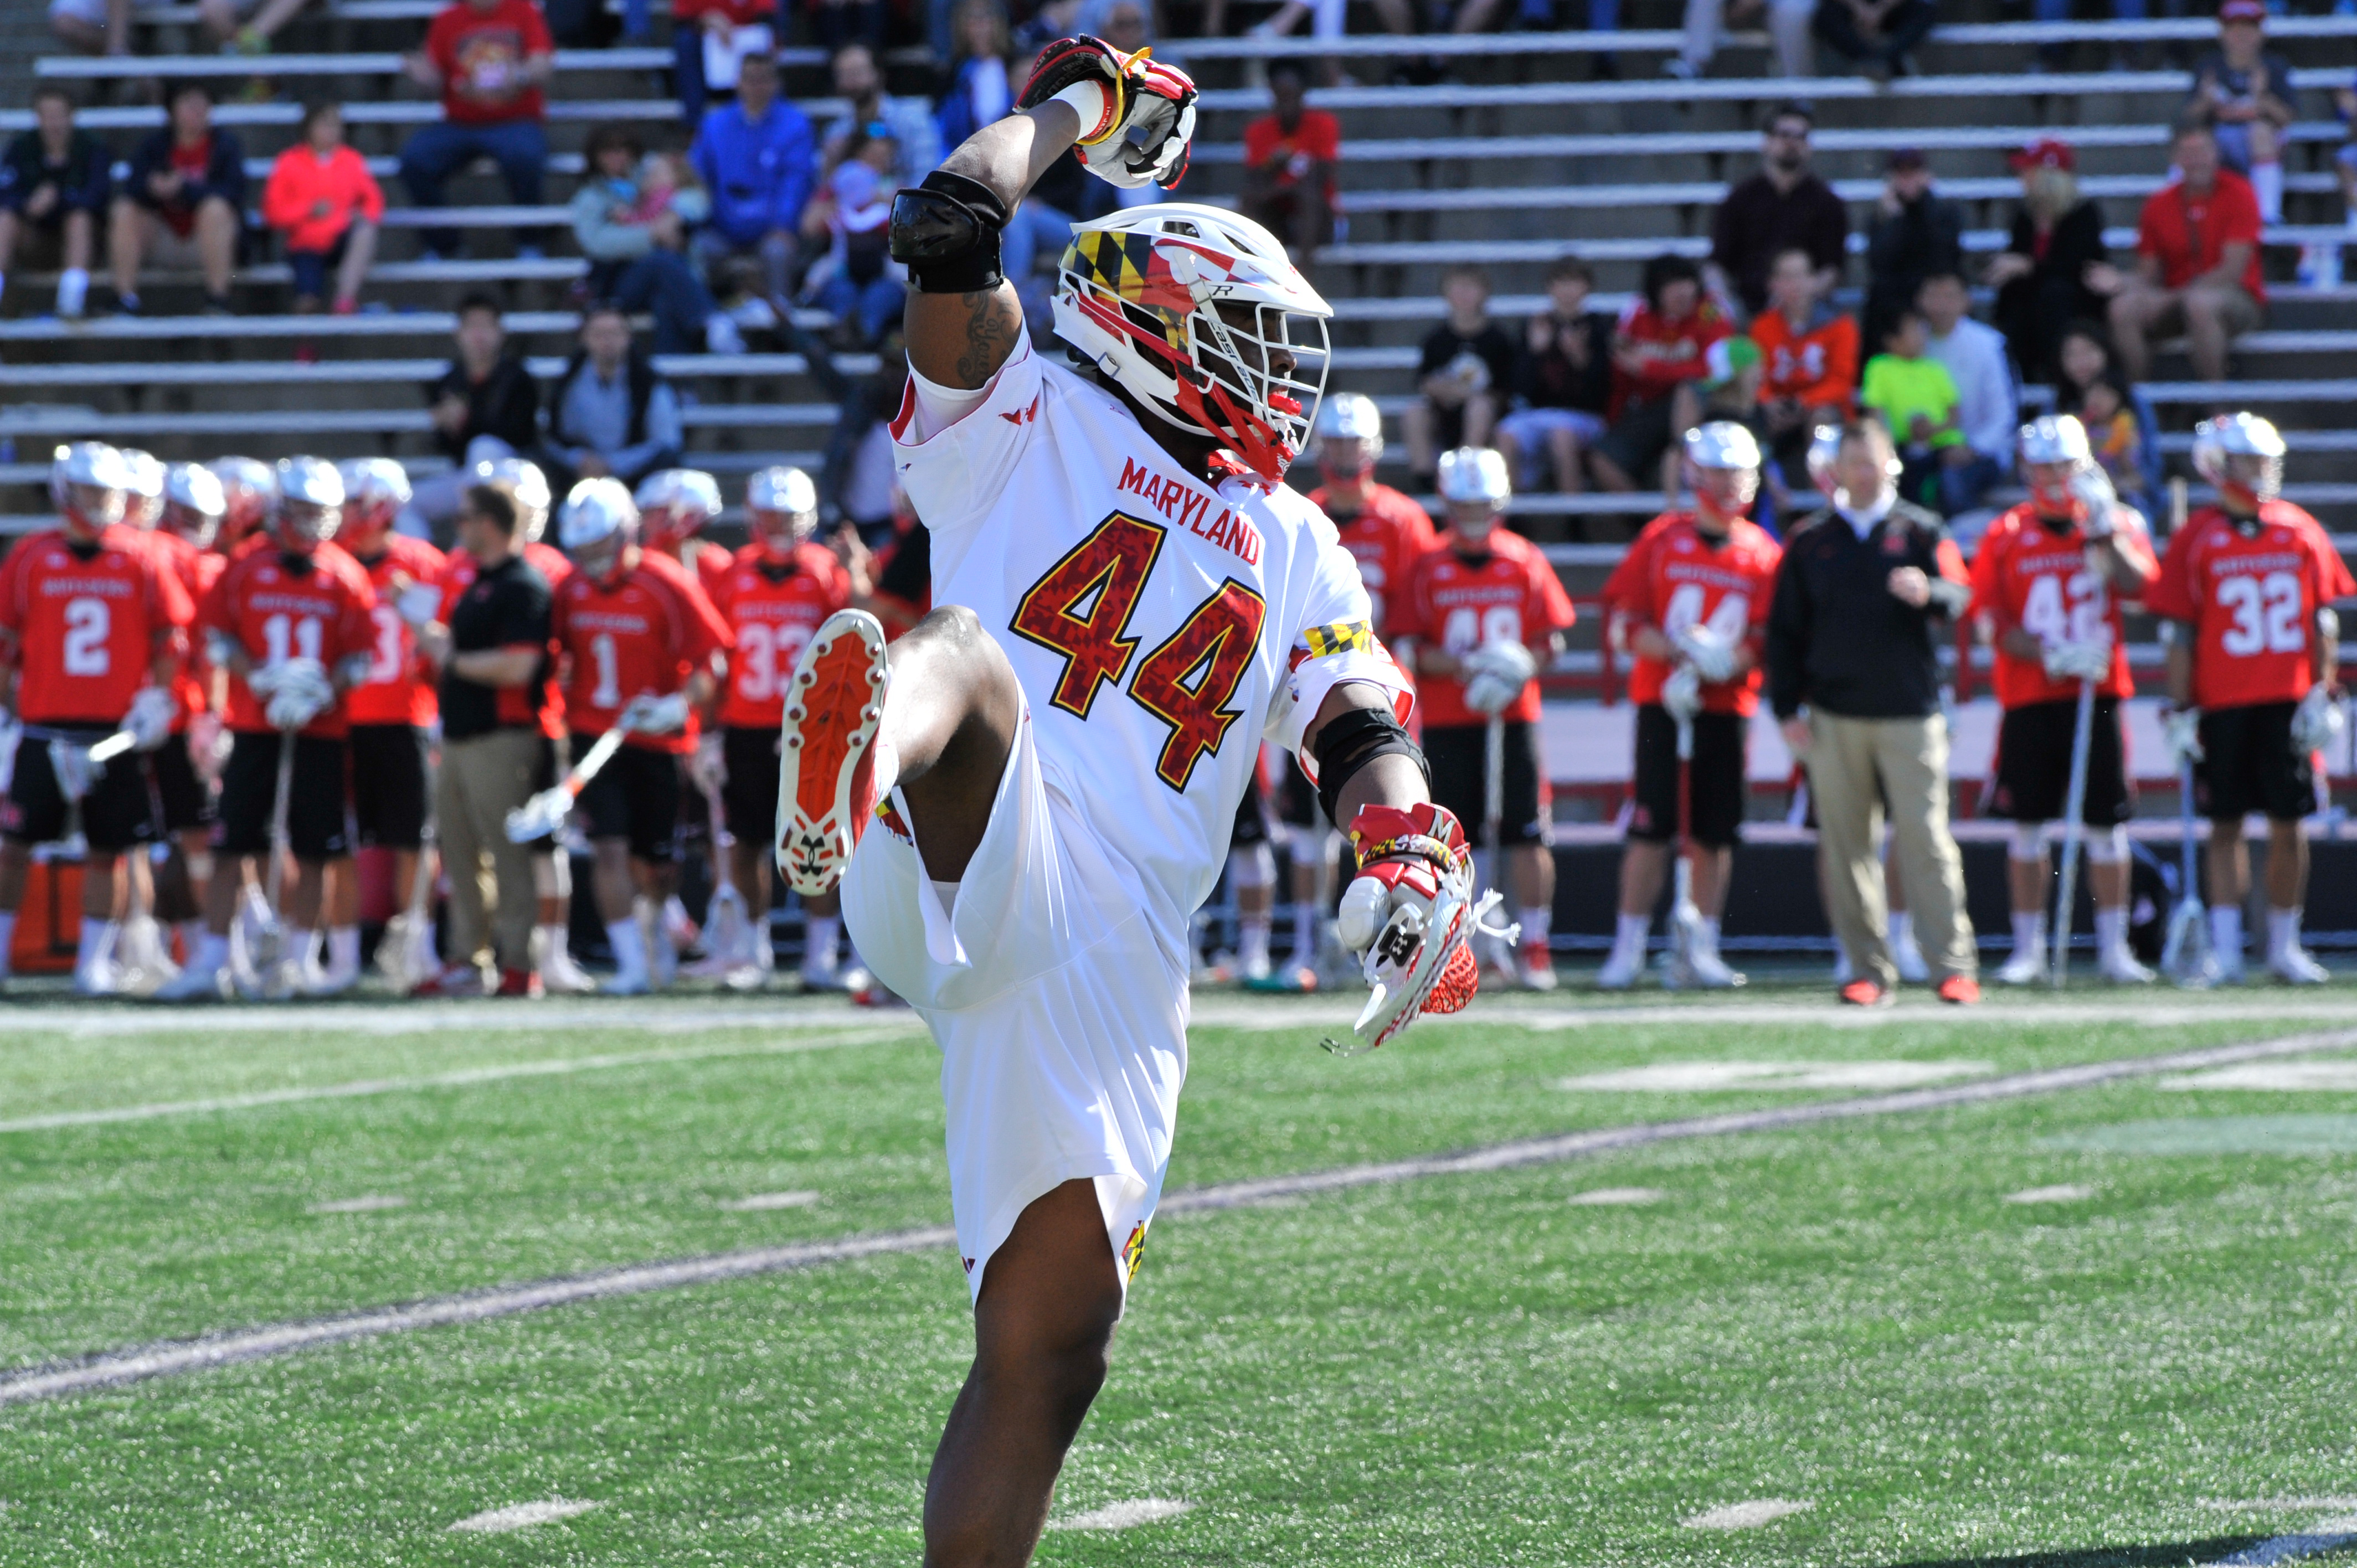 Former Maryland men's lacrosse players start Major League Lacrosse careers